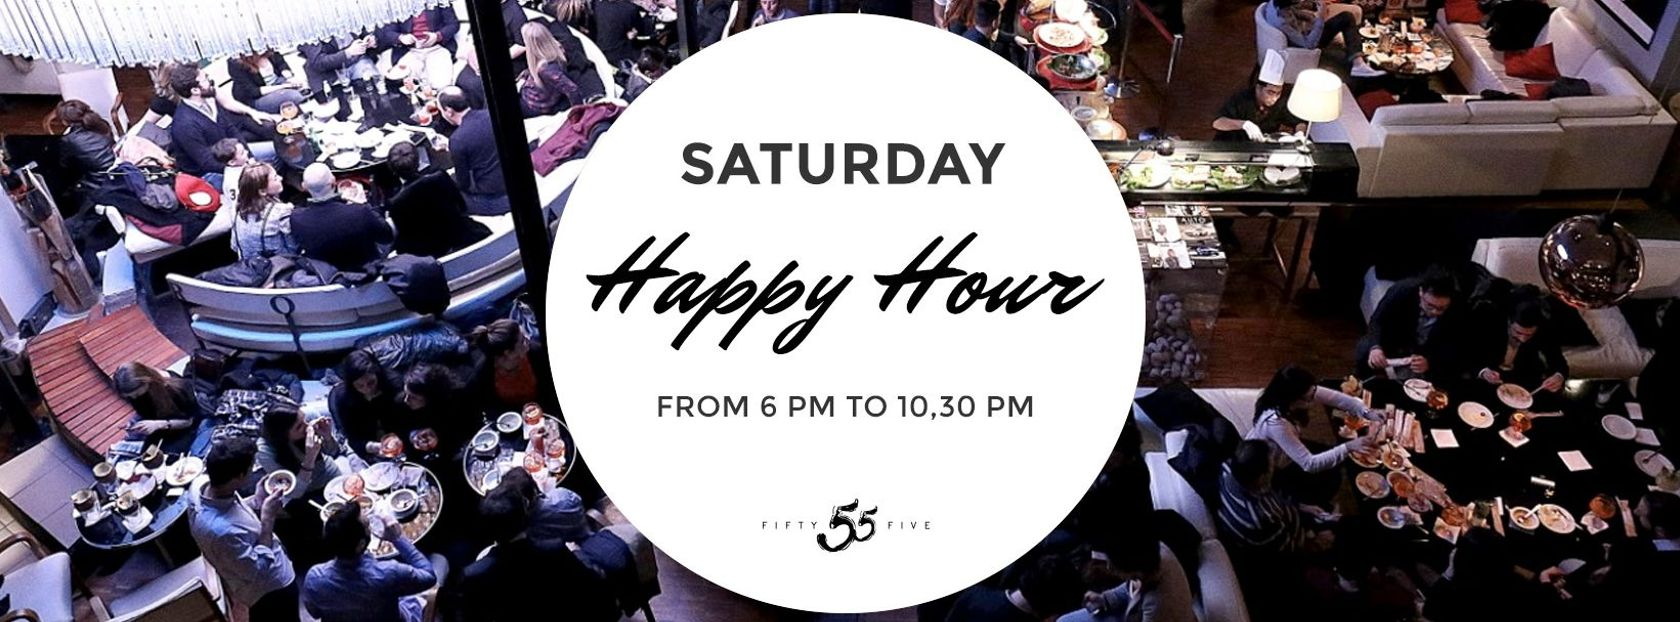 - Saturday - Happy Hour